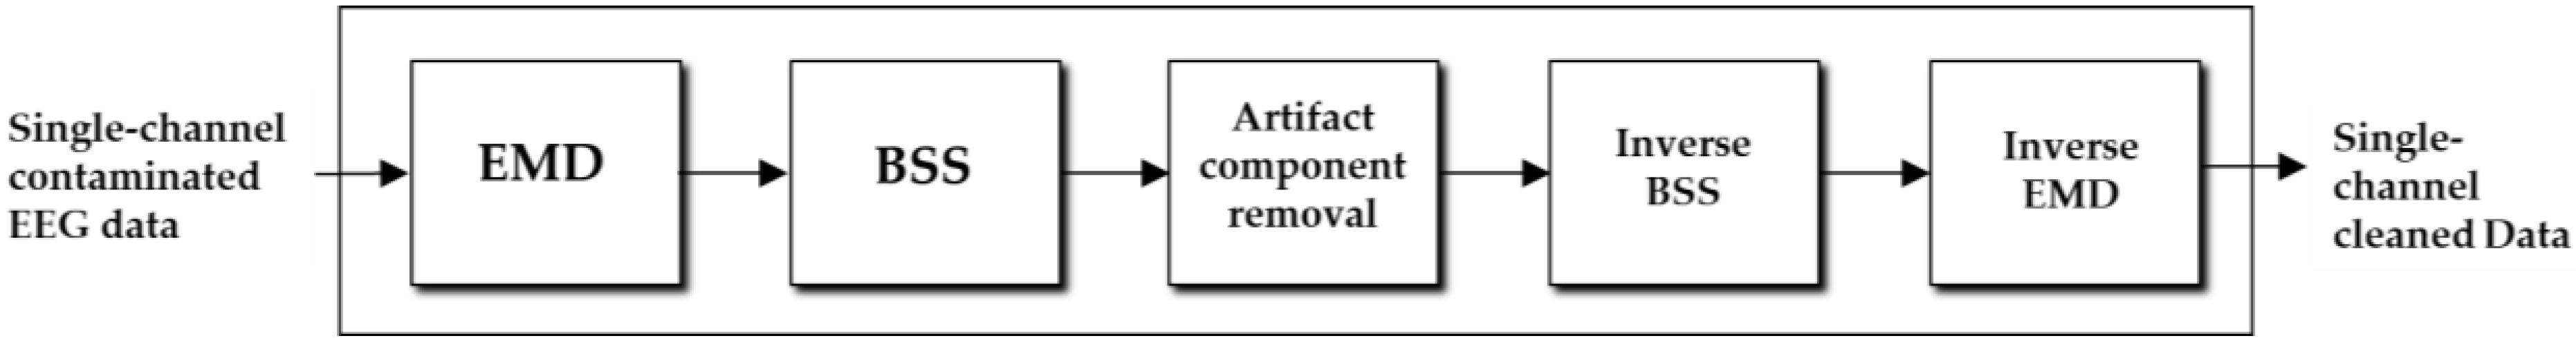 Sensors | Free Full-Text | Removal of Artifacts from EEG